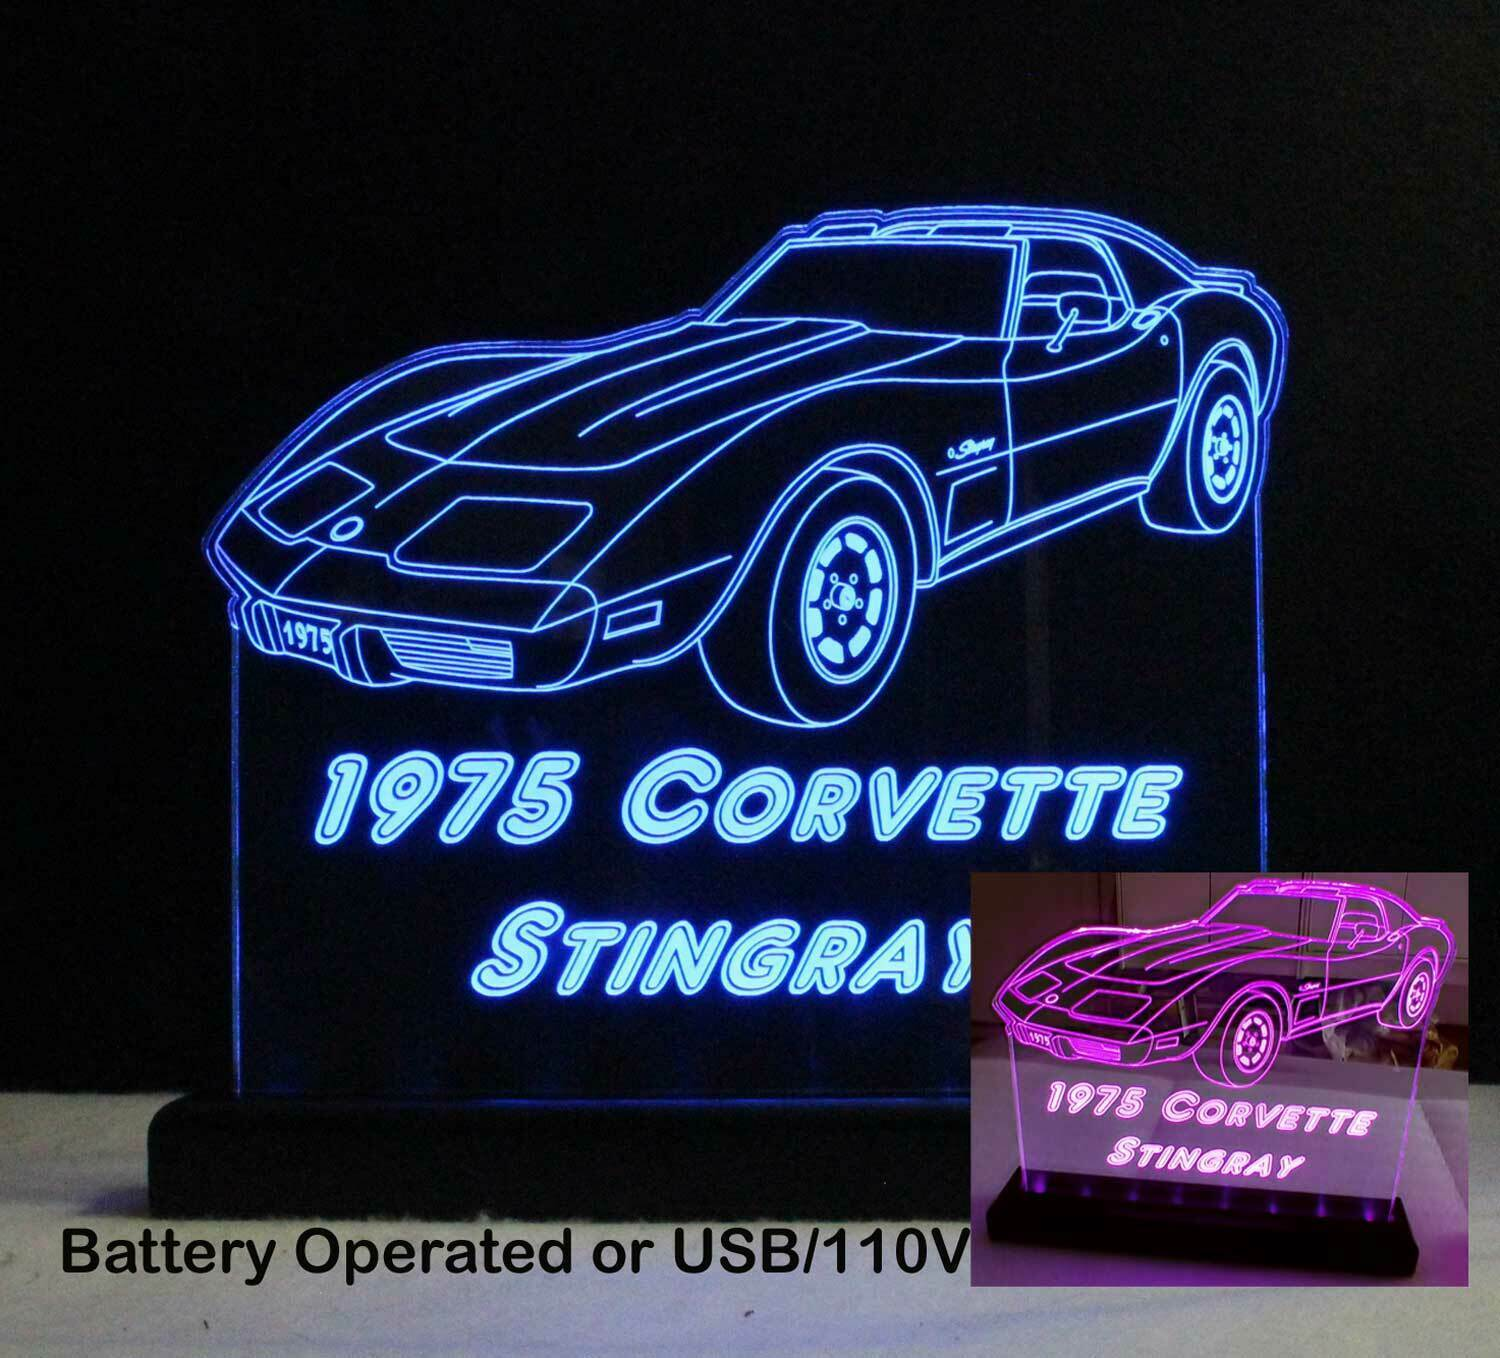 Primary image for Personalized Corvette sign - Rechargeable Battery/USB/110V or USB/110V only